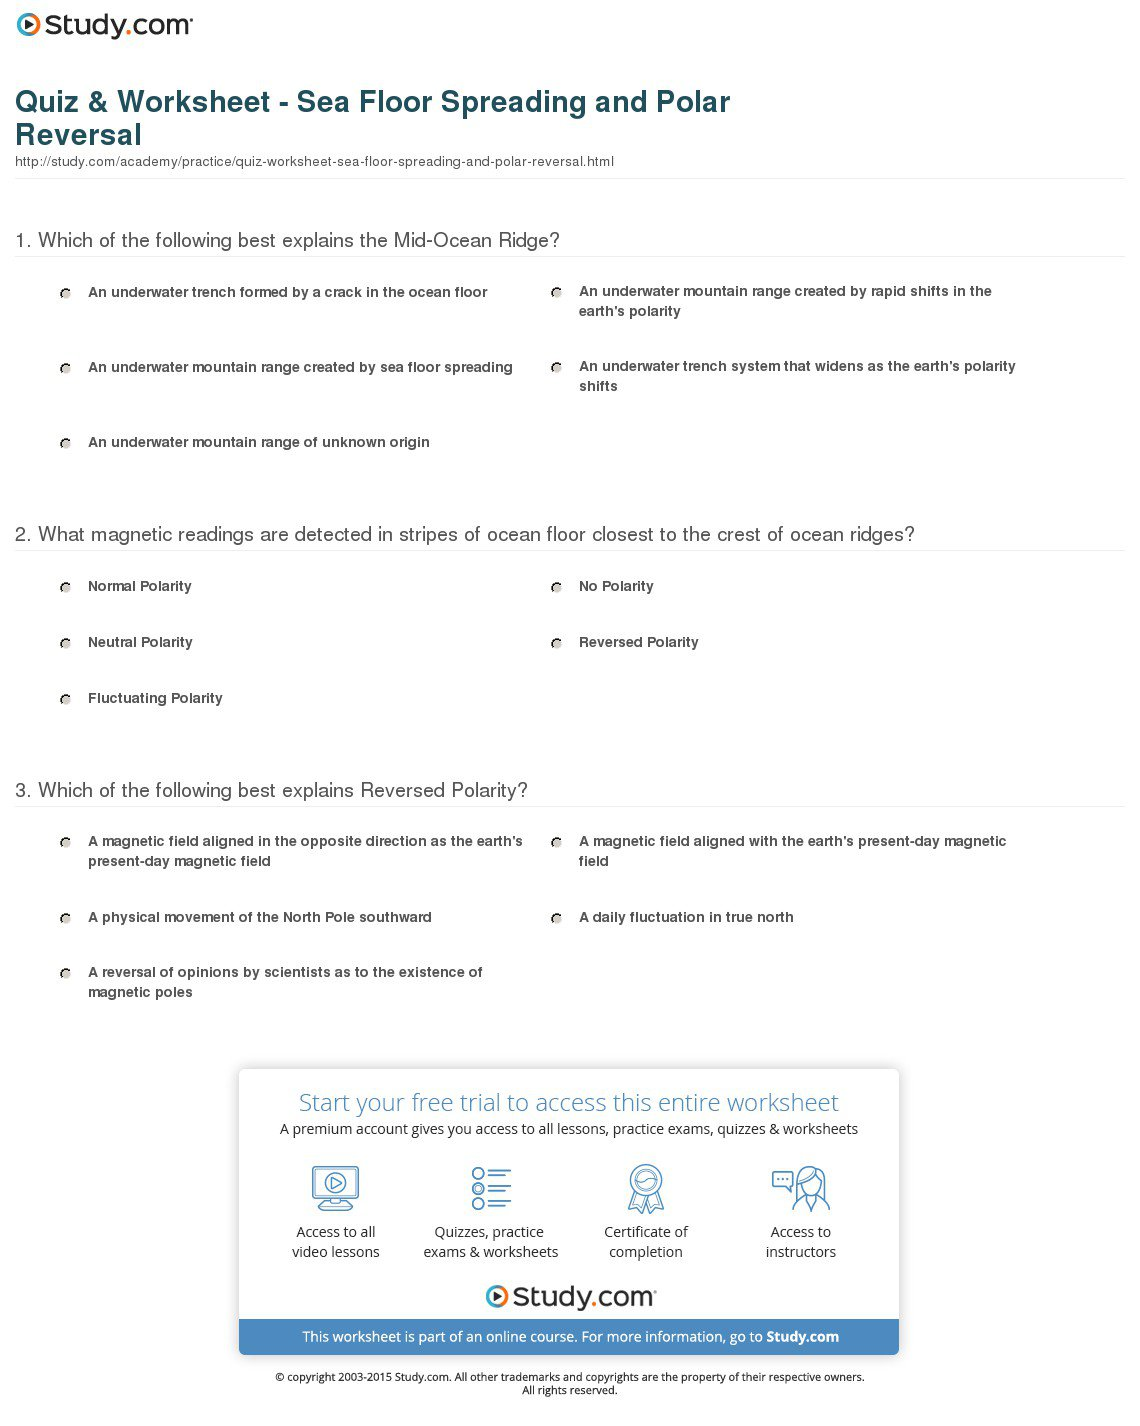 Worksheets Seafloor Spreading Worksheet Chicochino, The Study Of